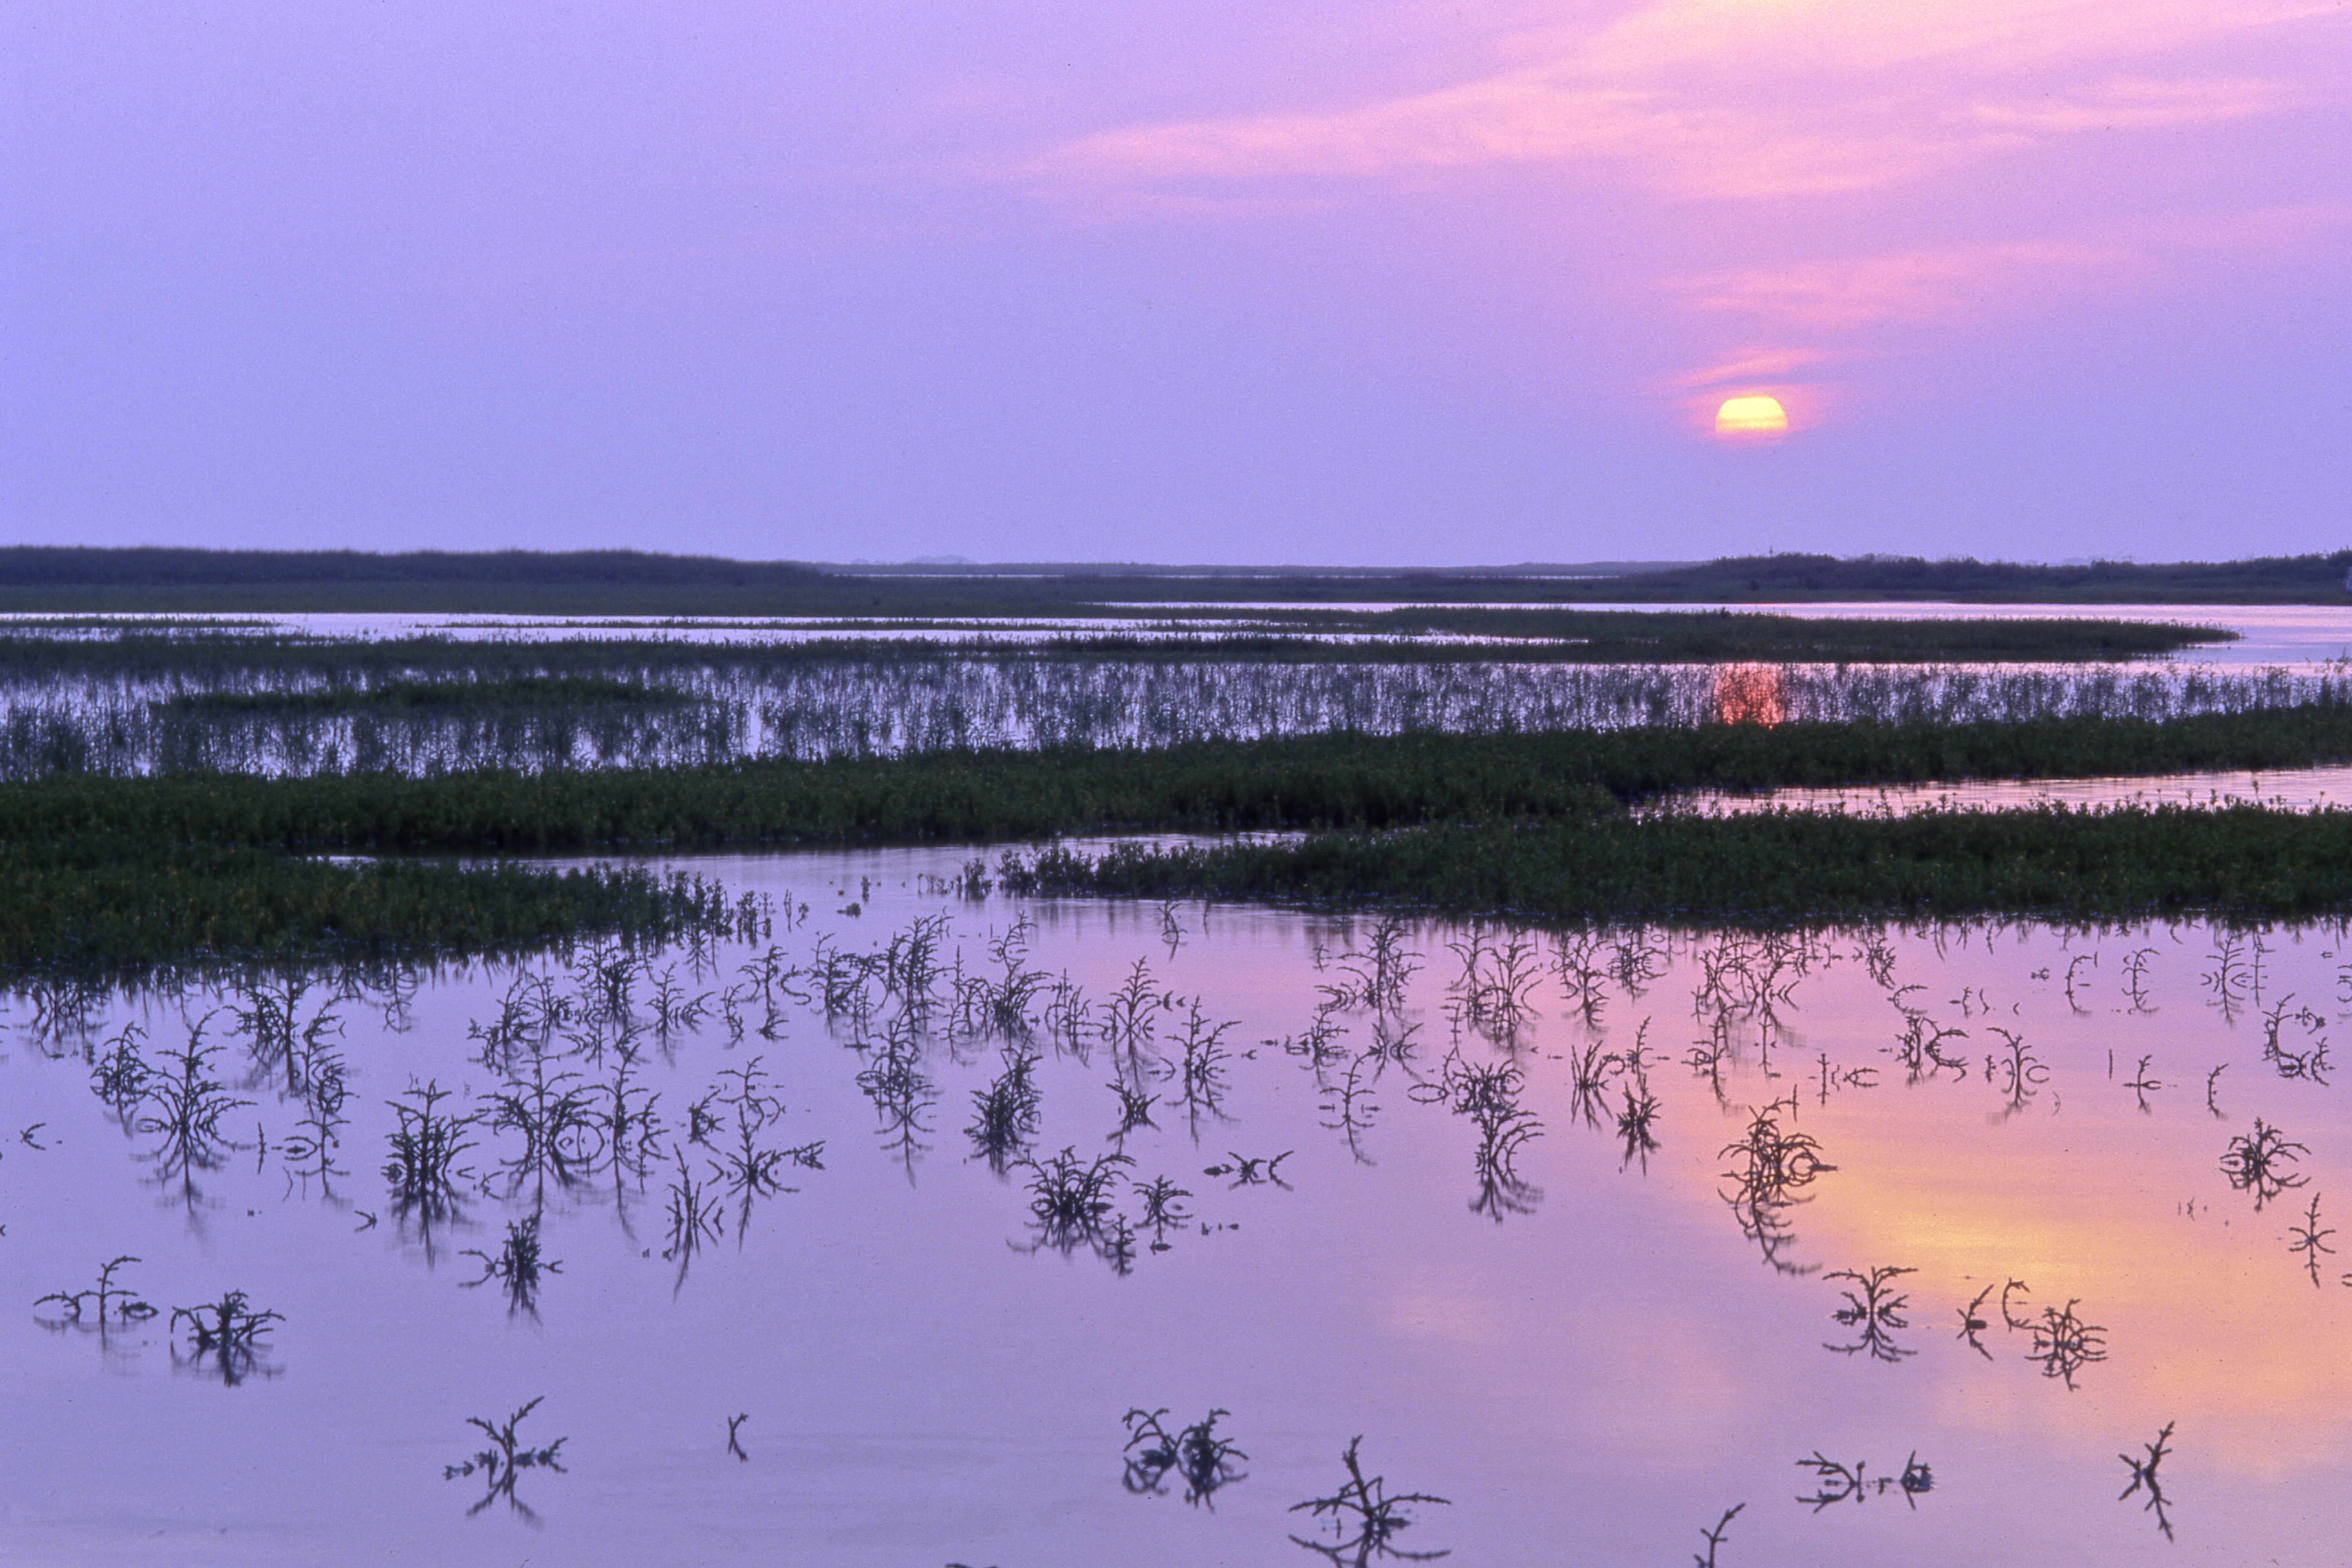 A purple sunset over a marshy Nueces Bay in Texas.